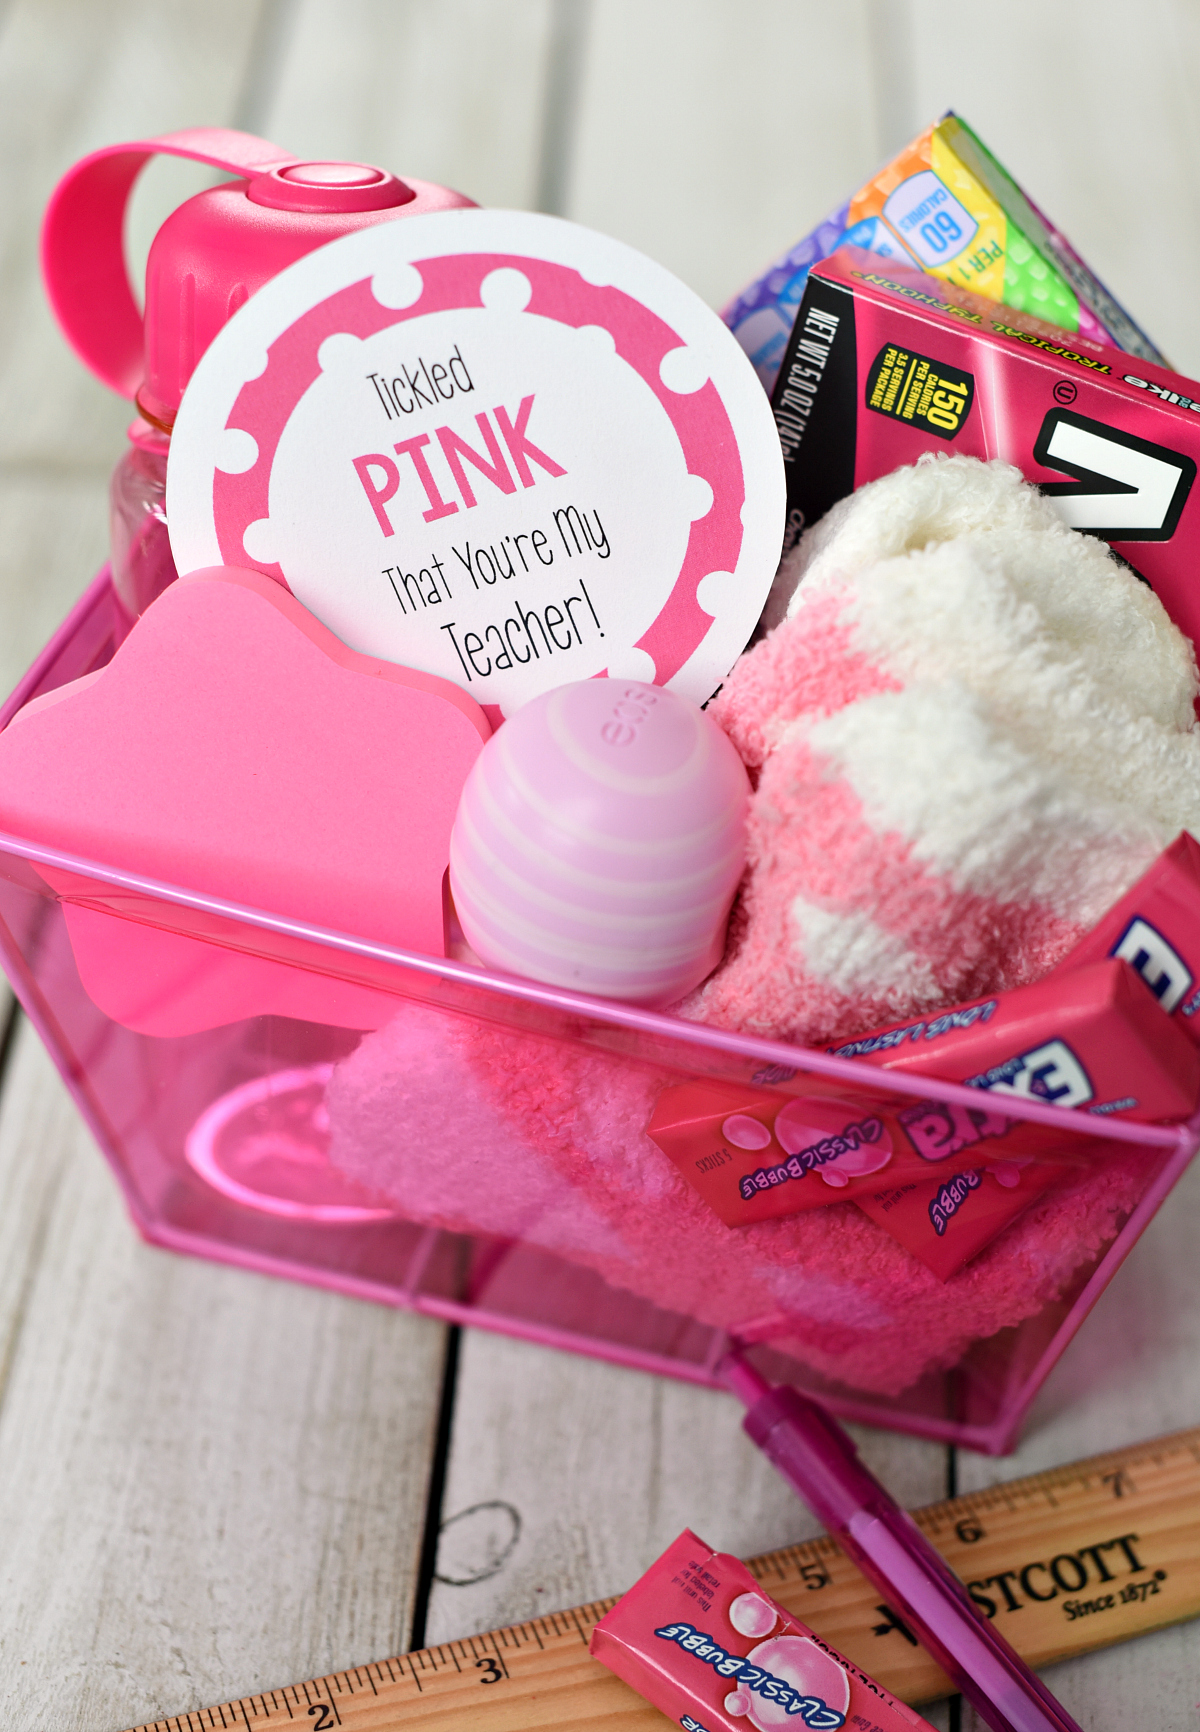 """Cute """"Tickled Pink"""" Teacher Gifts-Fill a gift basket with pink things and add this cute tag and you've got the best gift for a teacher! #teacherappreciation #teachergifts #teachergiftsendofyear"""